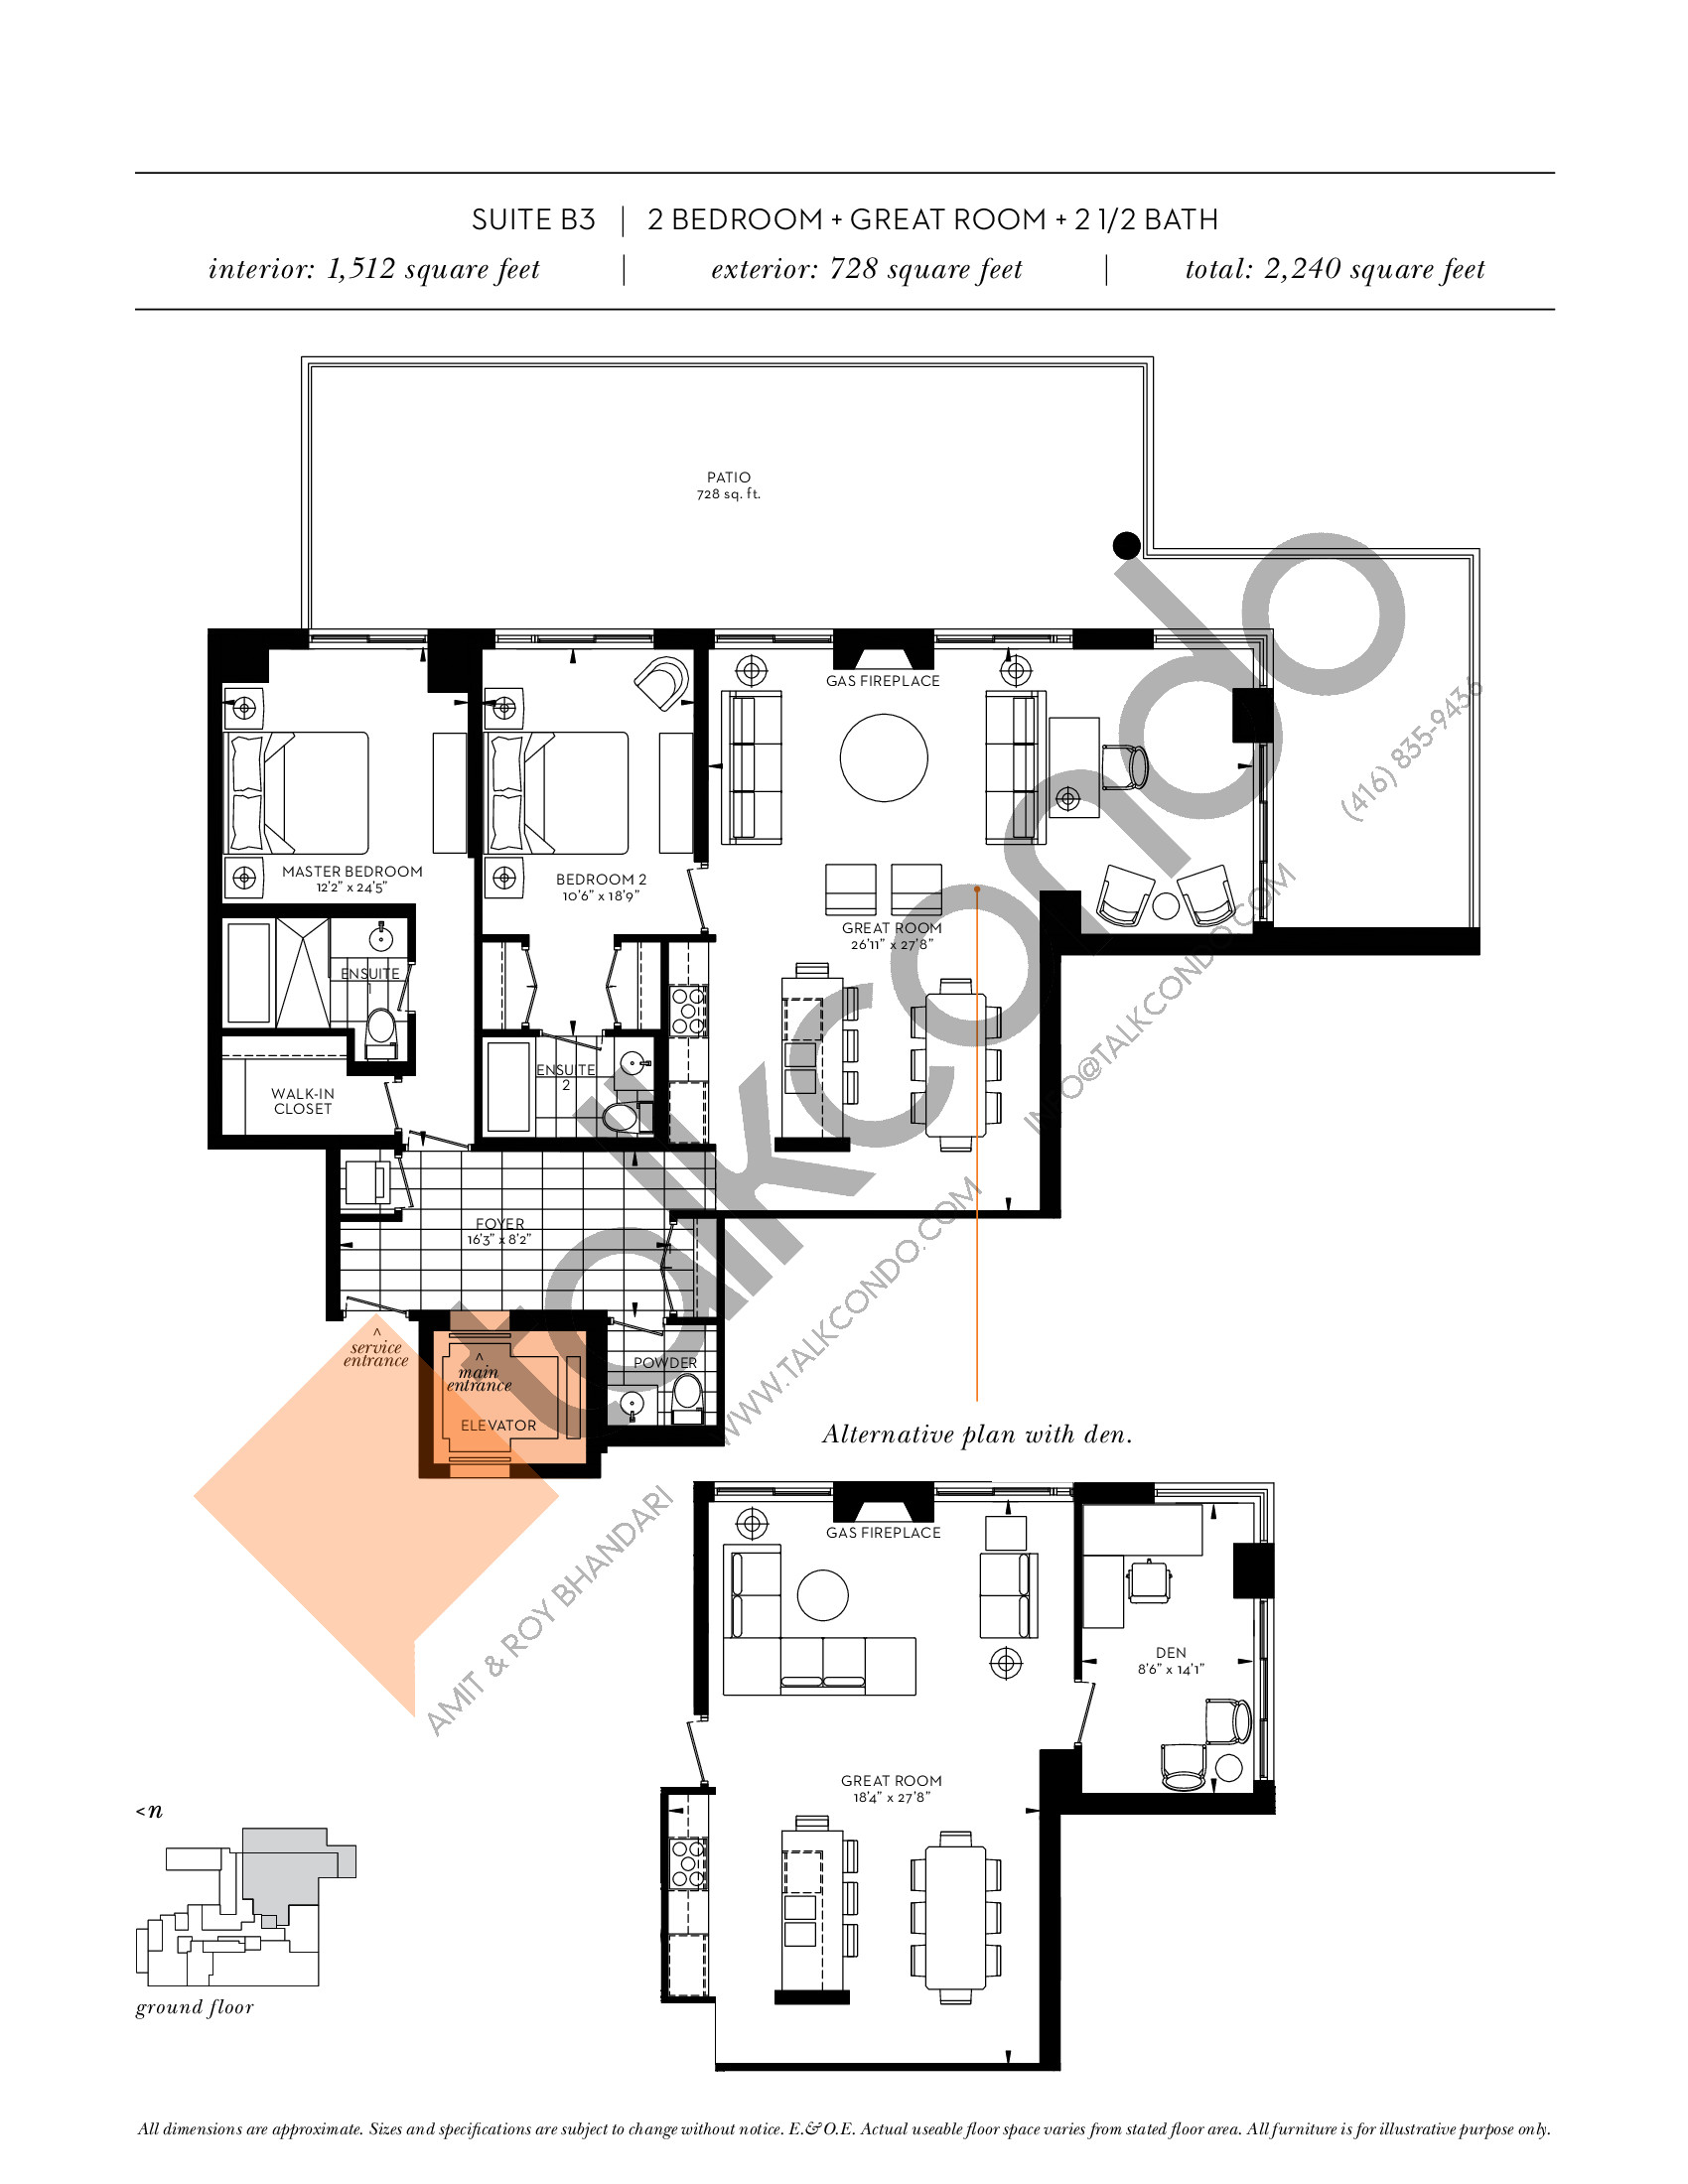 Suite B3 Floor Plan at The Davies - 1512 sq.ft